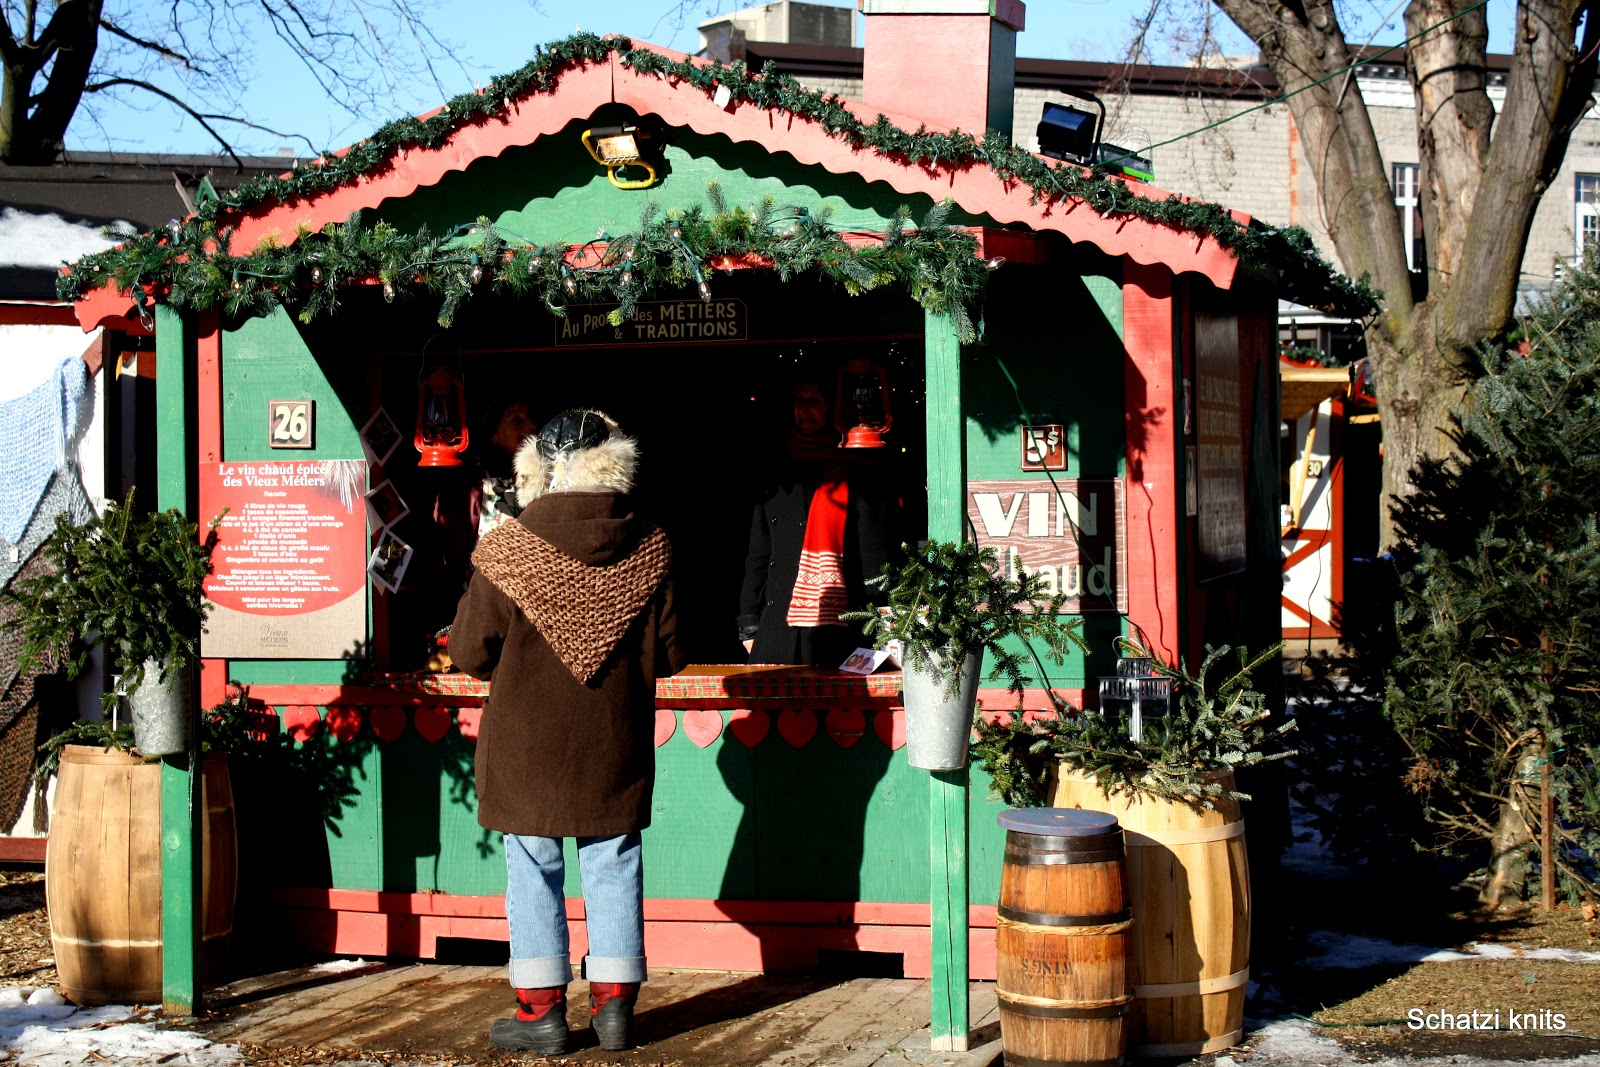 Schatzi's Knits: 'Twas The Night Before Christmas